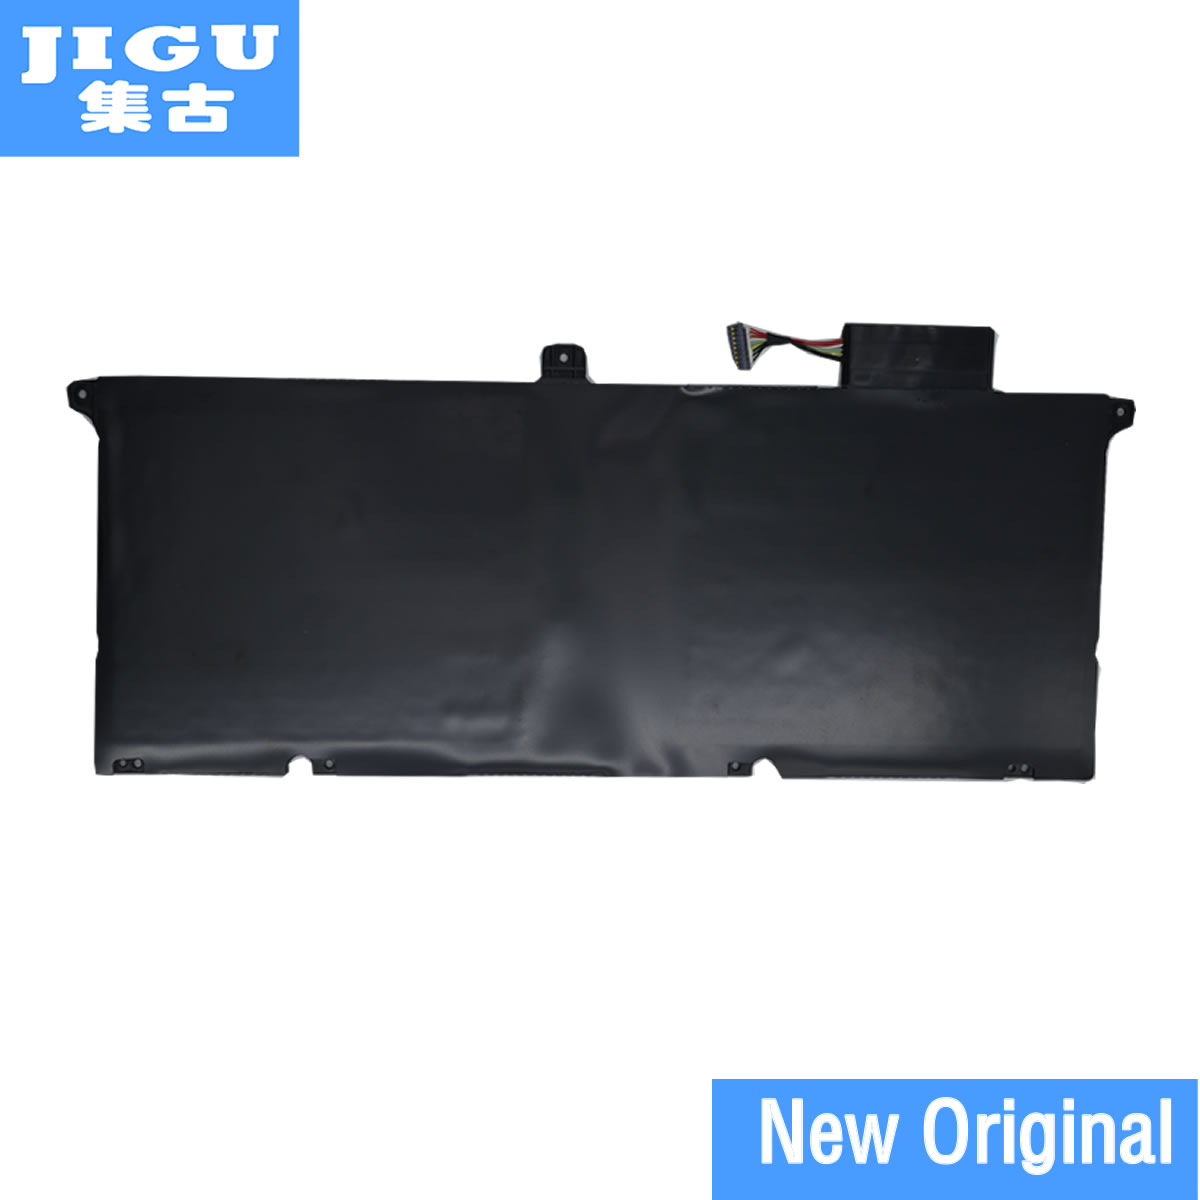 JIGU AA-PBXN8AR Replacement Laptop Battery For Samsung 900X4 900X46 900X4B-A01DE 900X4B-A01FR 900X4B-A03 900X4C-A01 NP900X4 free shipping 45wh 7 4v aa pbyn4ab battery for samsung ultrabook np530u3c np530u3b 530u3c a02 aa pbyn4ab aa plwn4ab